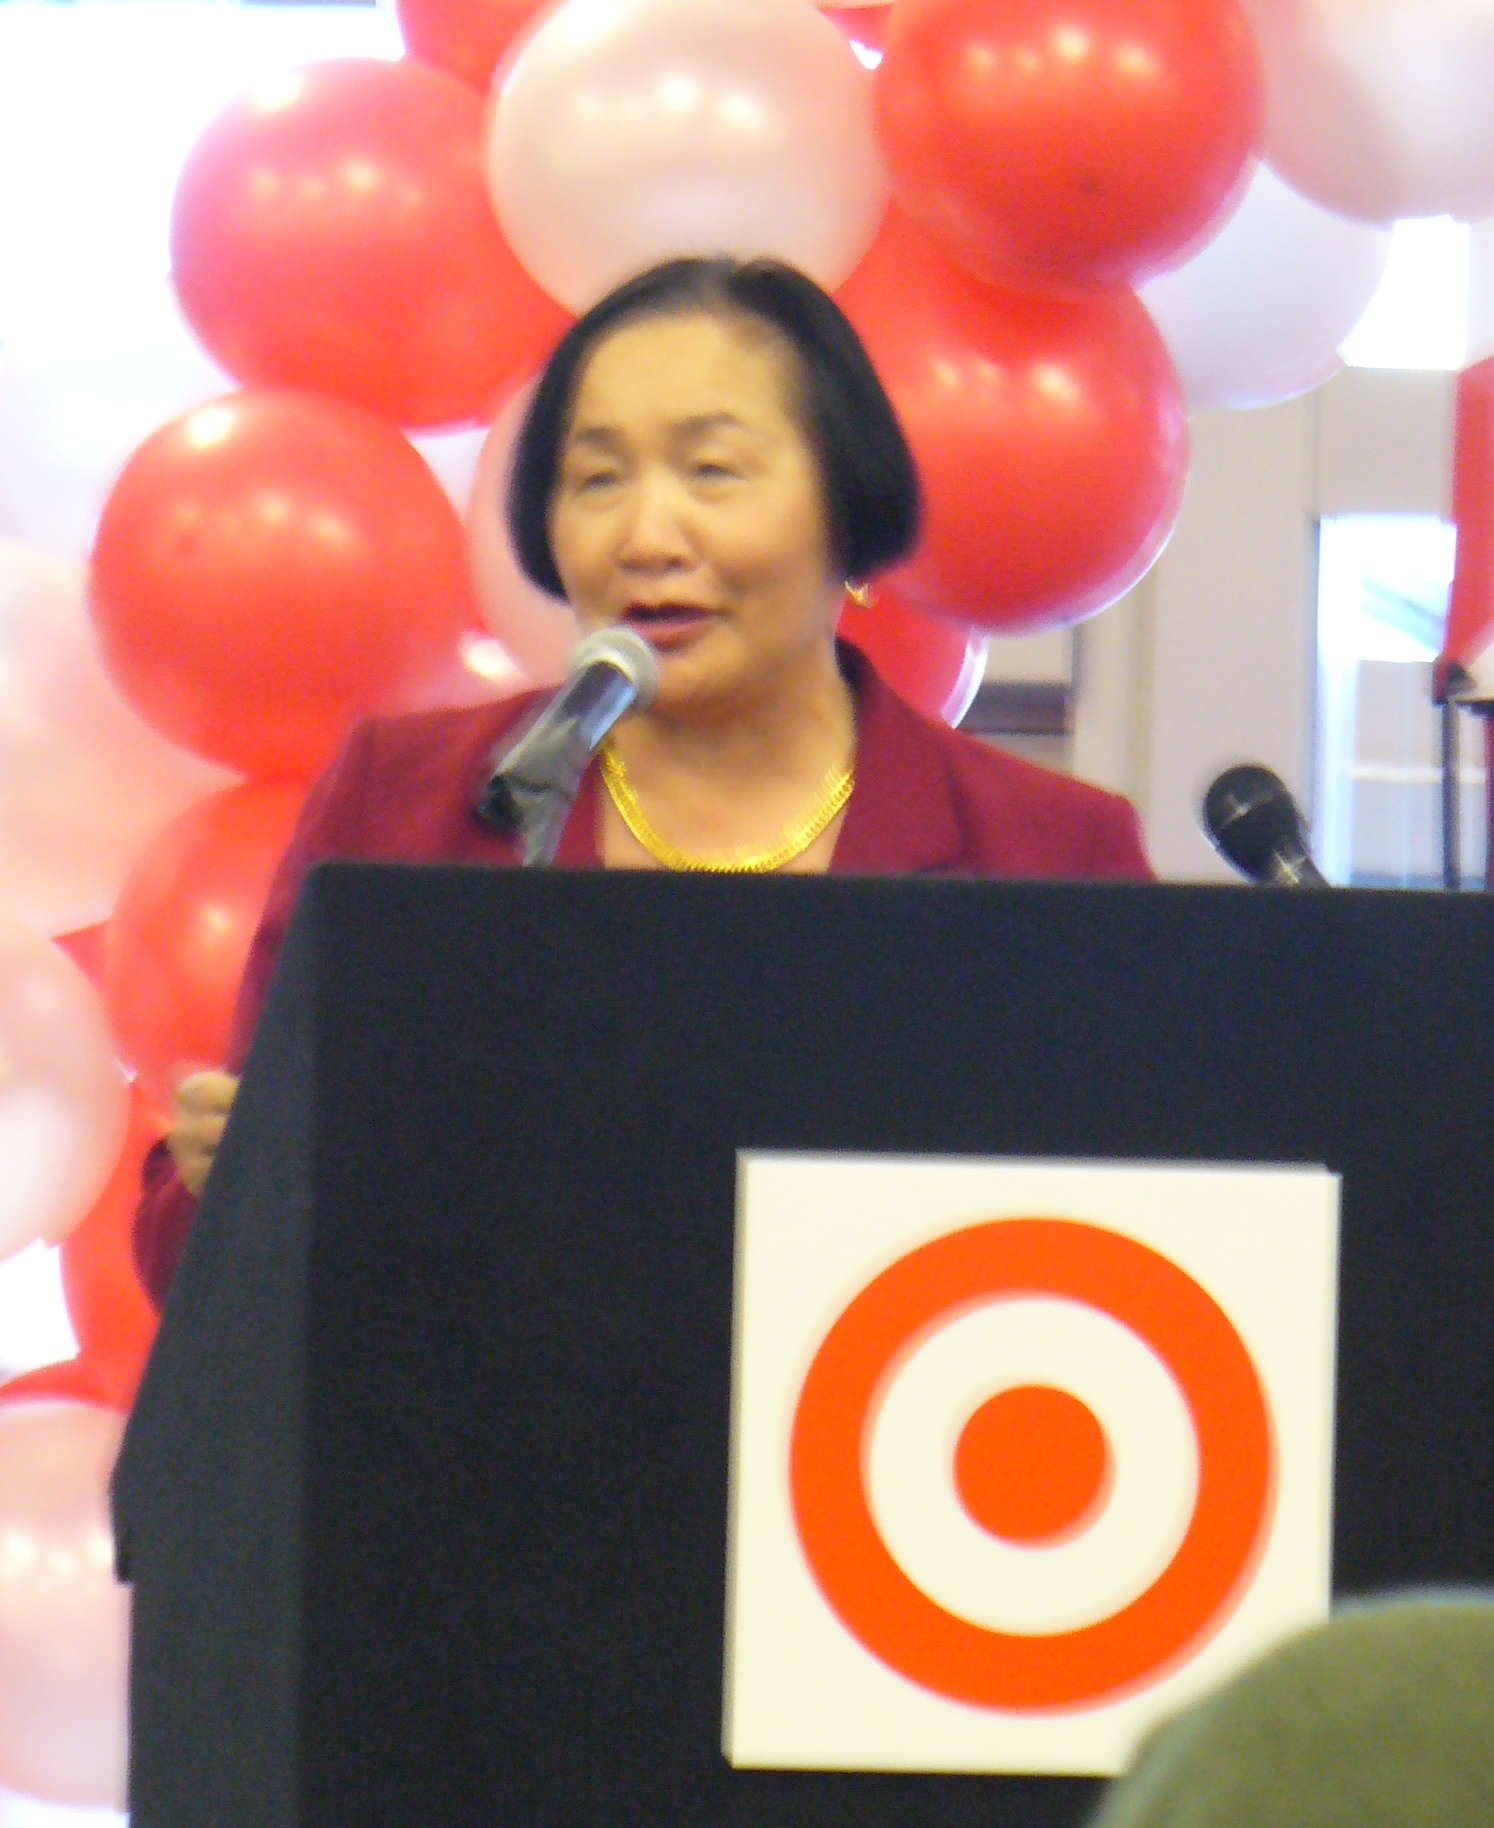 New Target Store means Jobs, Revenue for Oakland